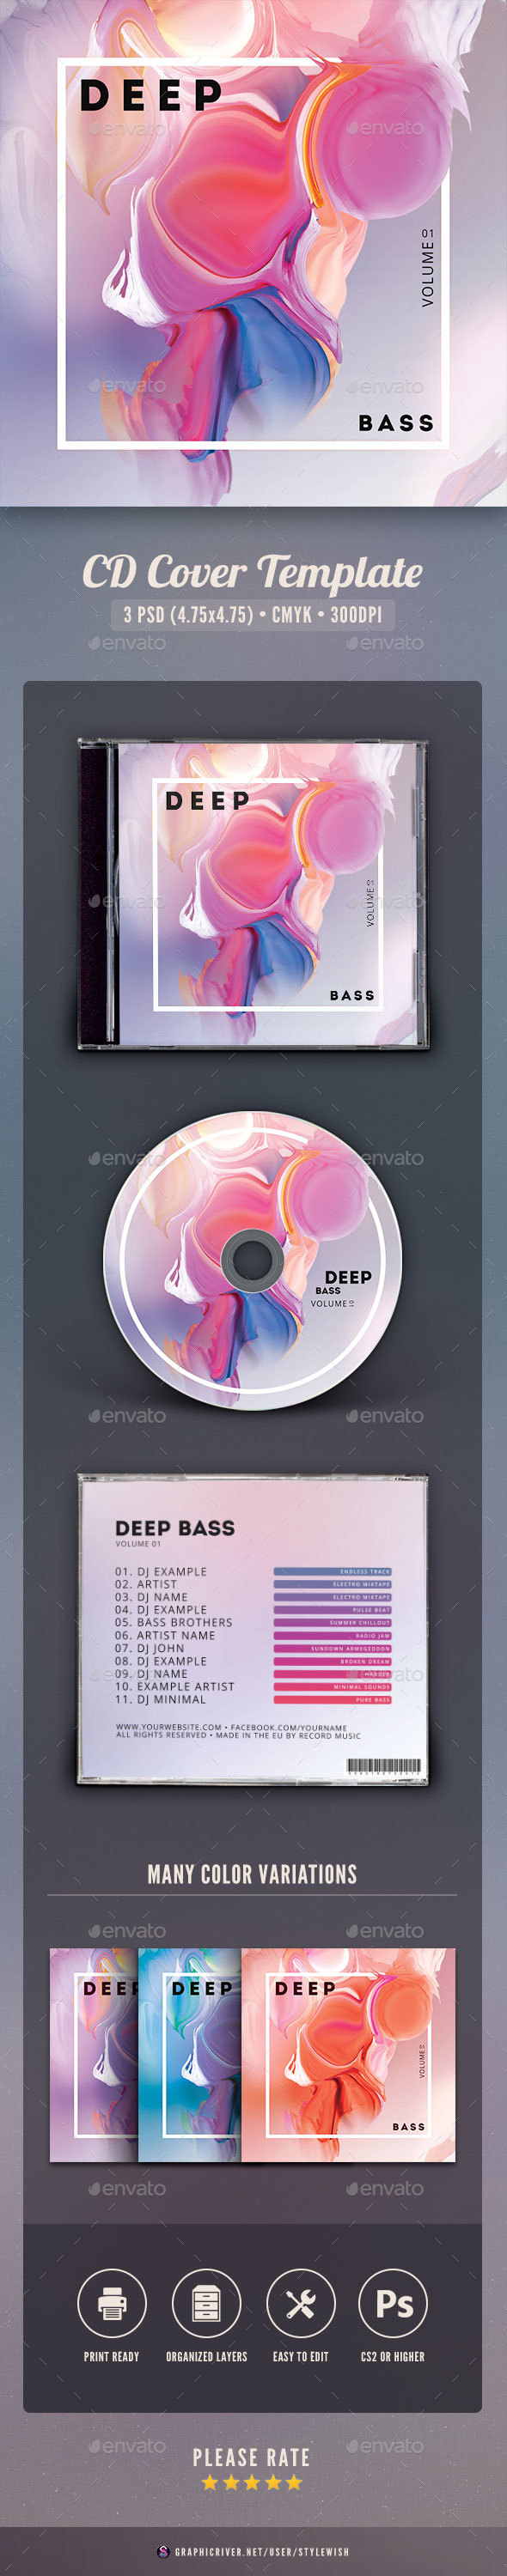 Deep Bass CD Cover Artwork - CD & DVD Artwork Print Templates